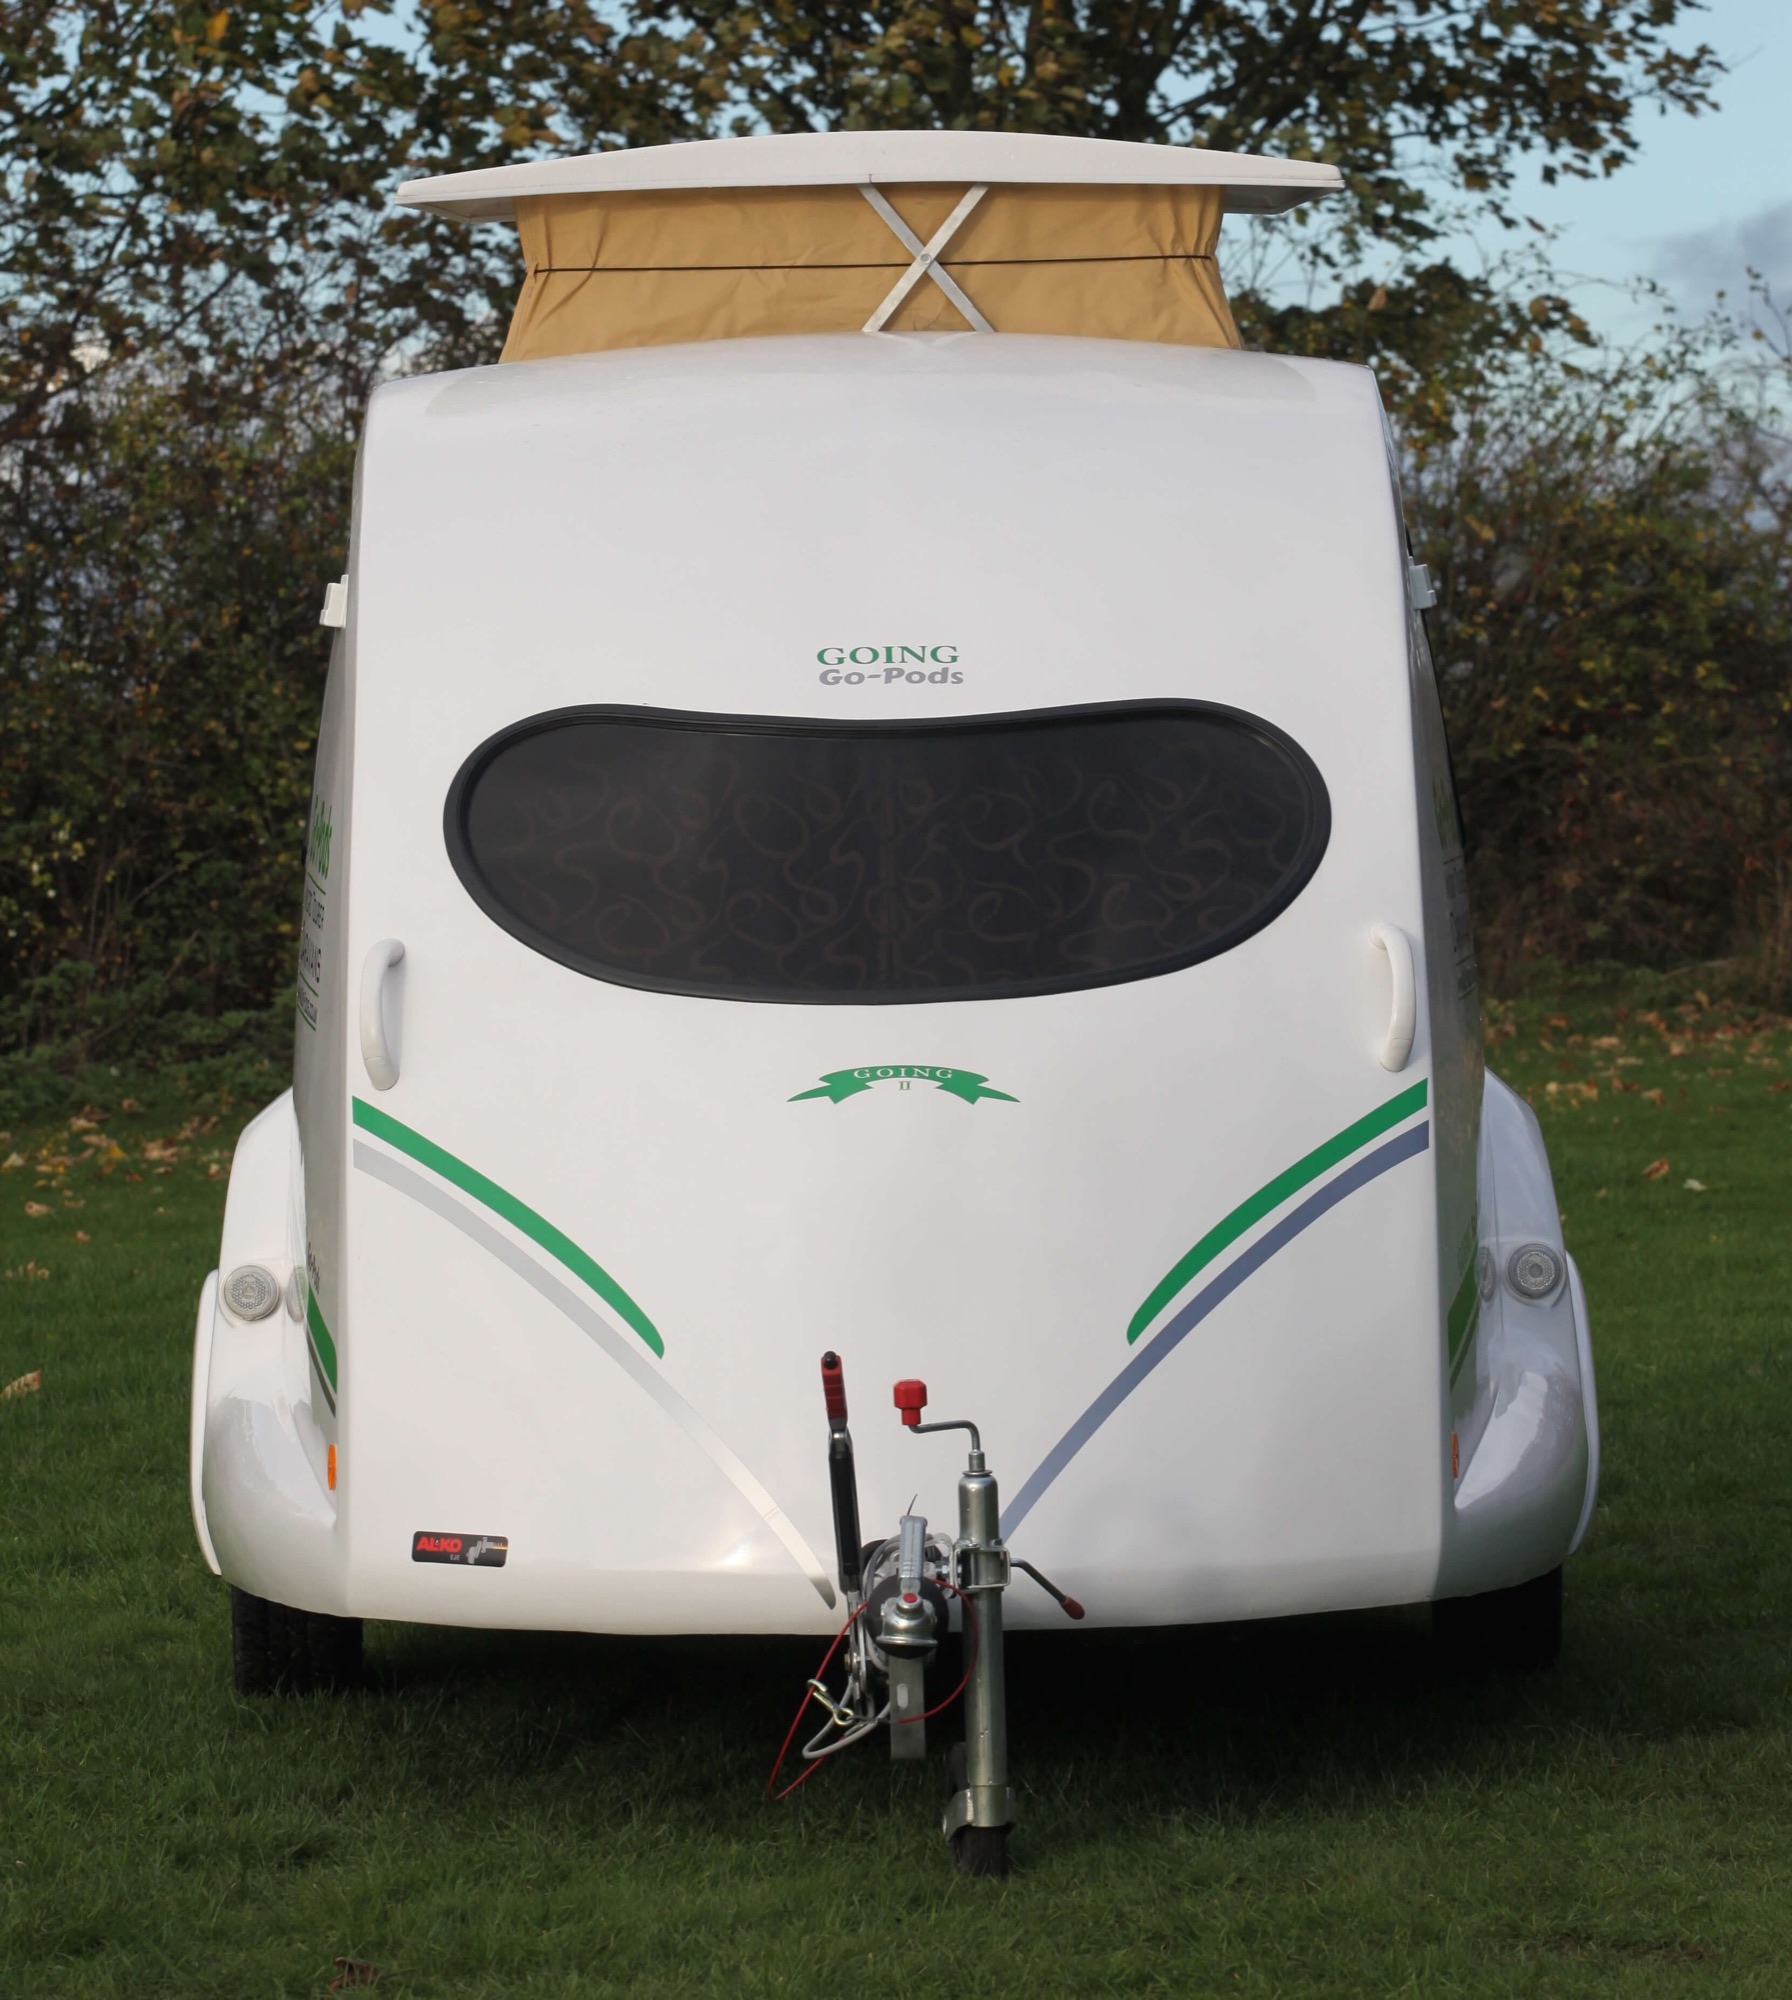 Go-Pods. The 2 berth micro tourer caravans 9